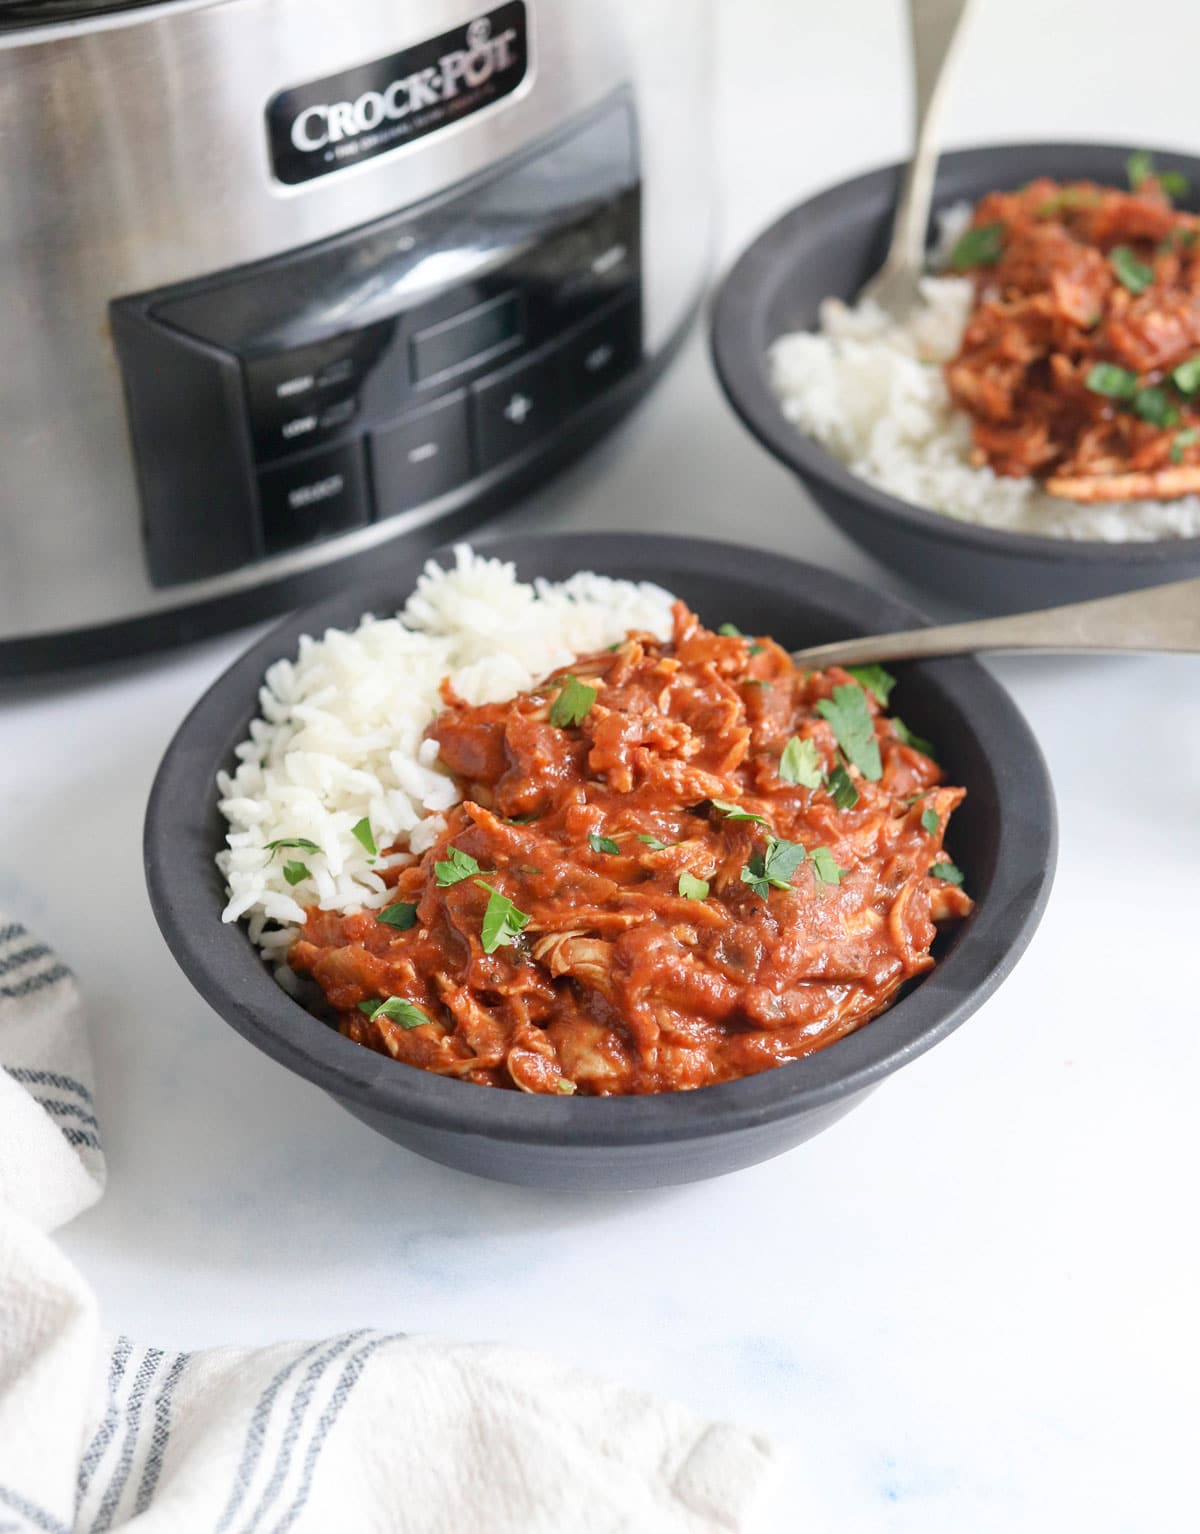 finished slow cooker butter chicken with white rice in a black bowl